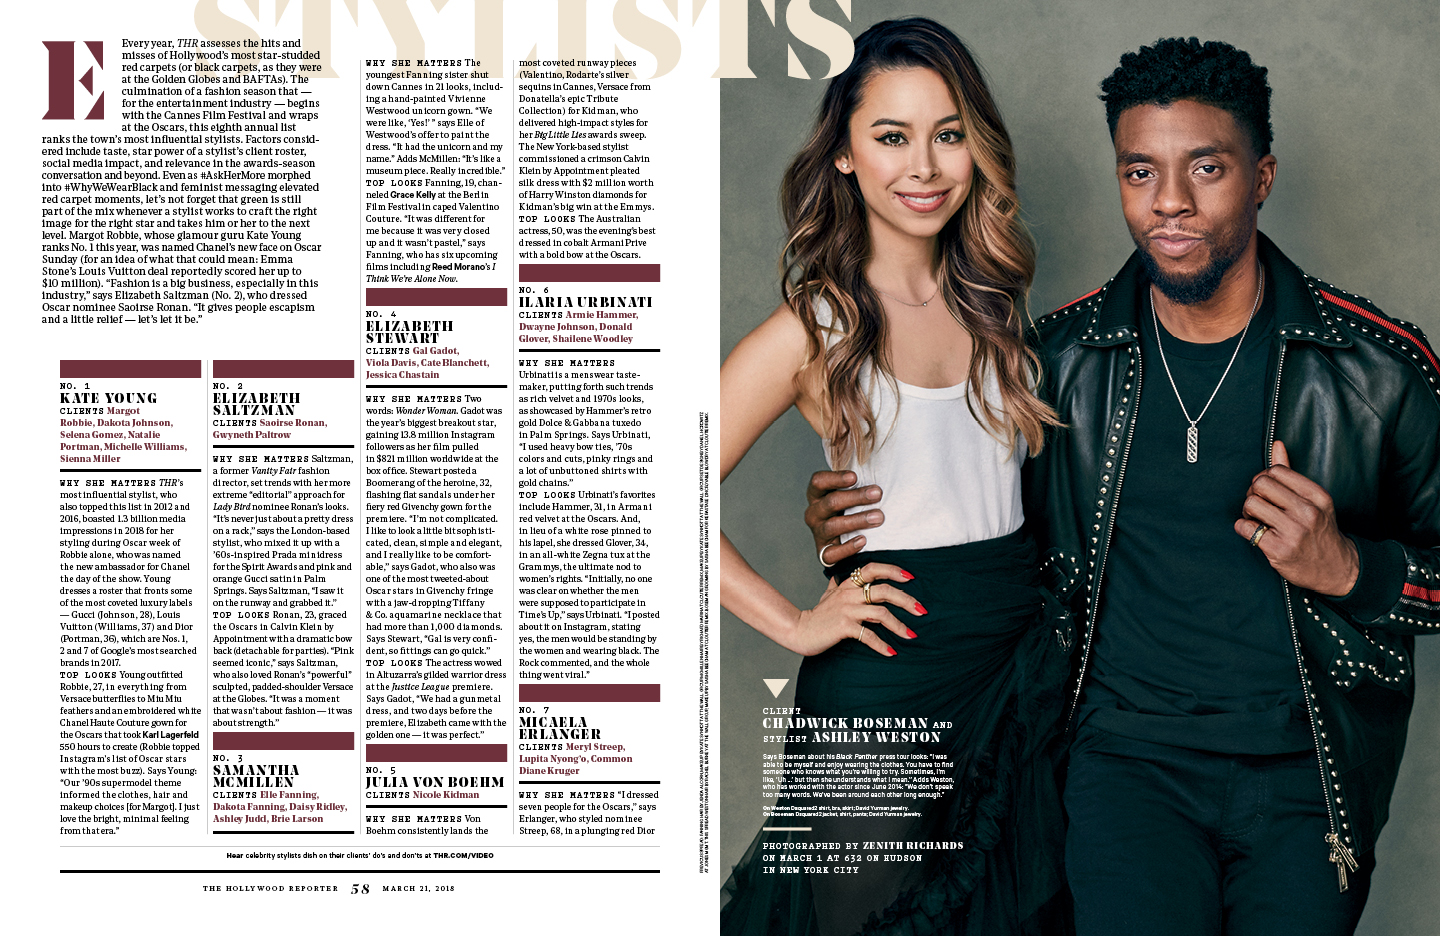 The 25 Most Powerful Stylists / The Hollywood Reporter / kelsey stefanson / art direction + graphic design / yeskelsey.com